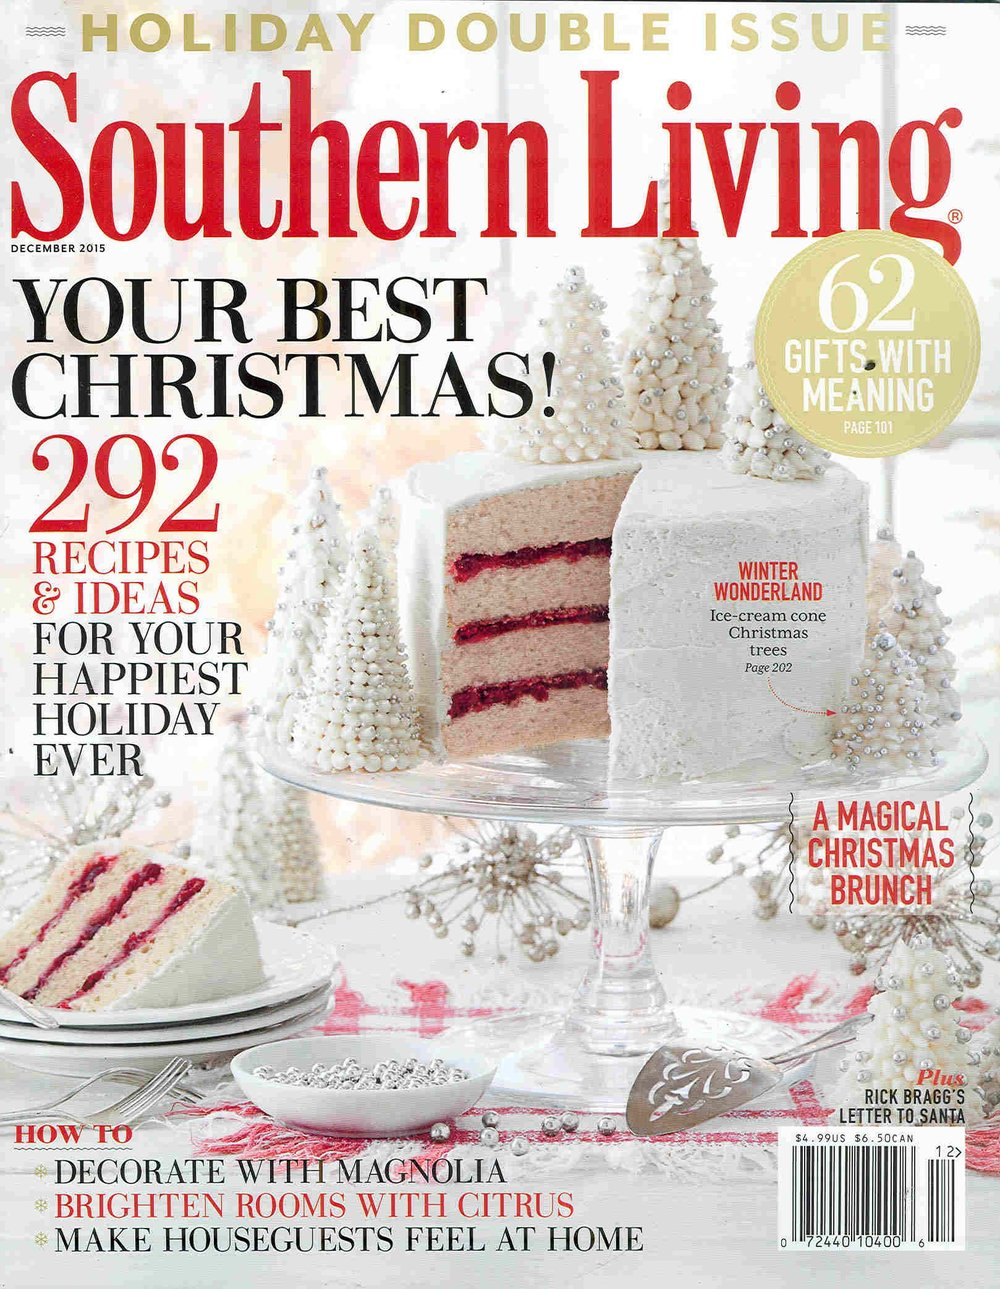 Press_Southern Living Cover.jpg